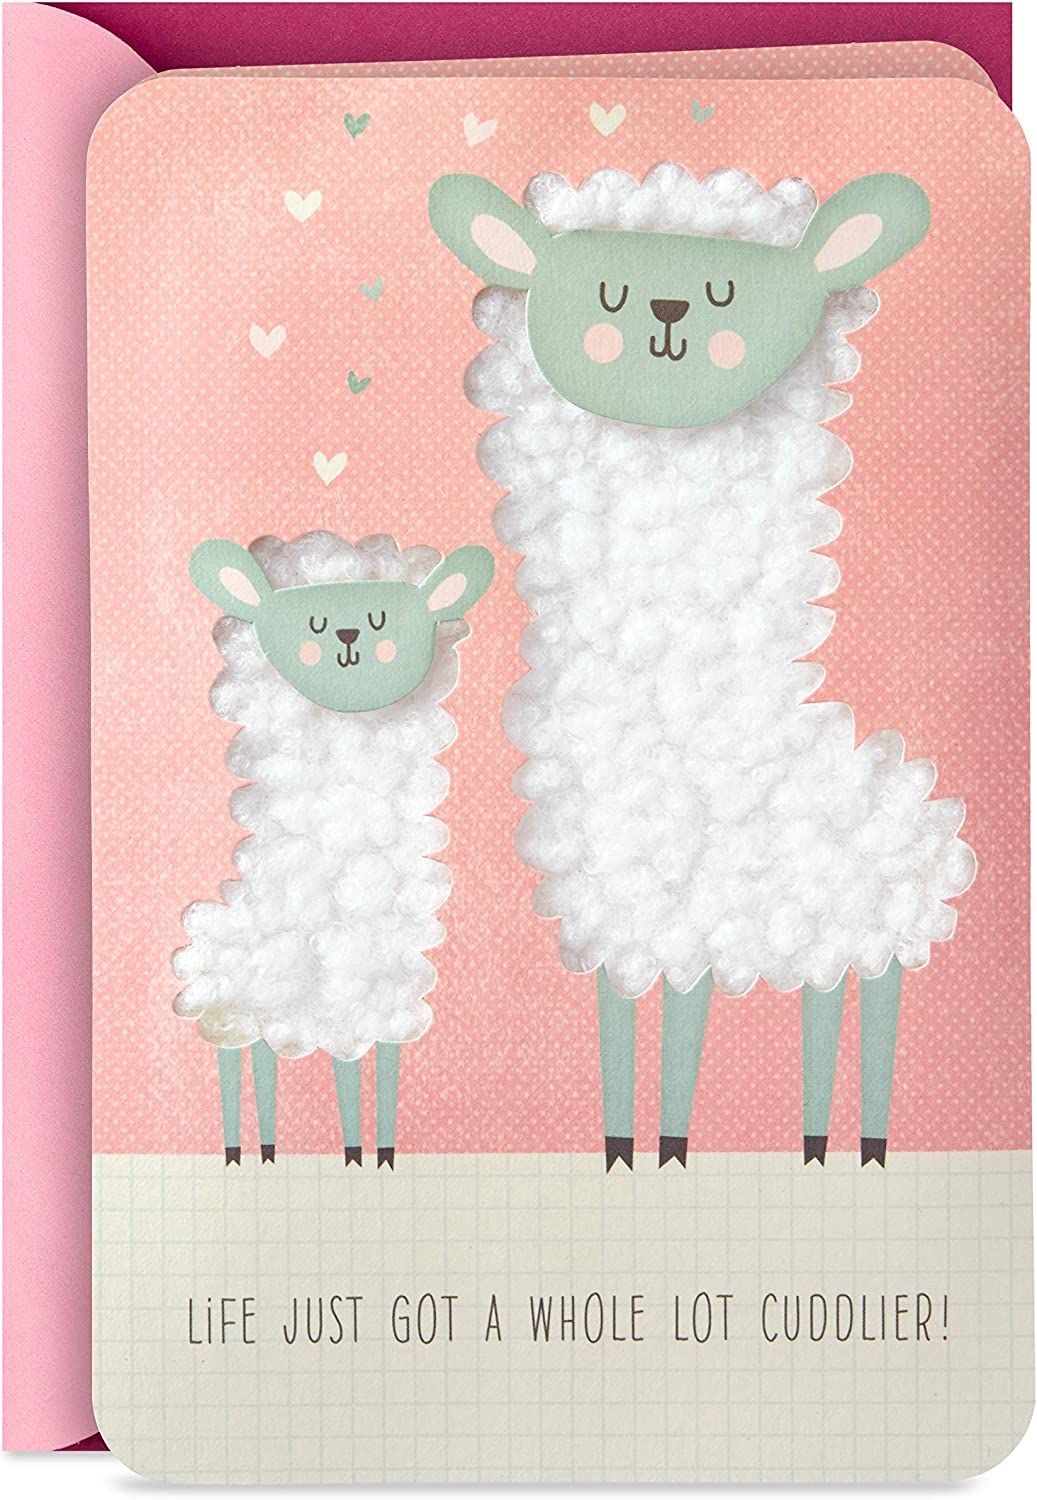 Hallmark Signature New Baby Congratulations Greeting Card, Llamas, A Whole Lot Cuddlier